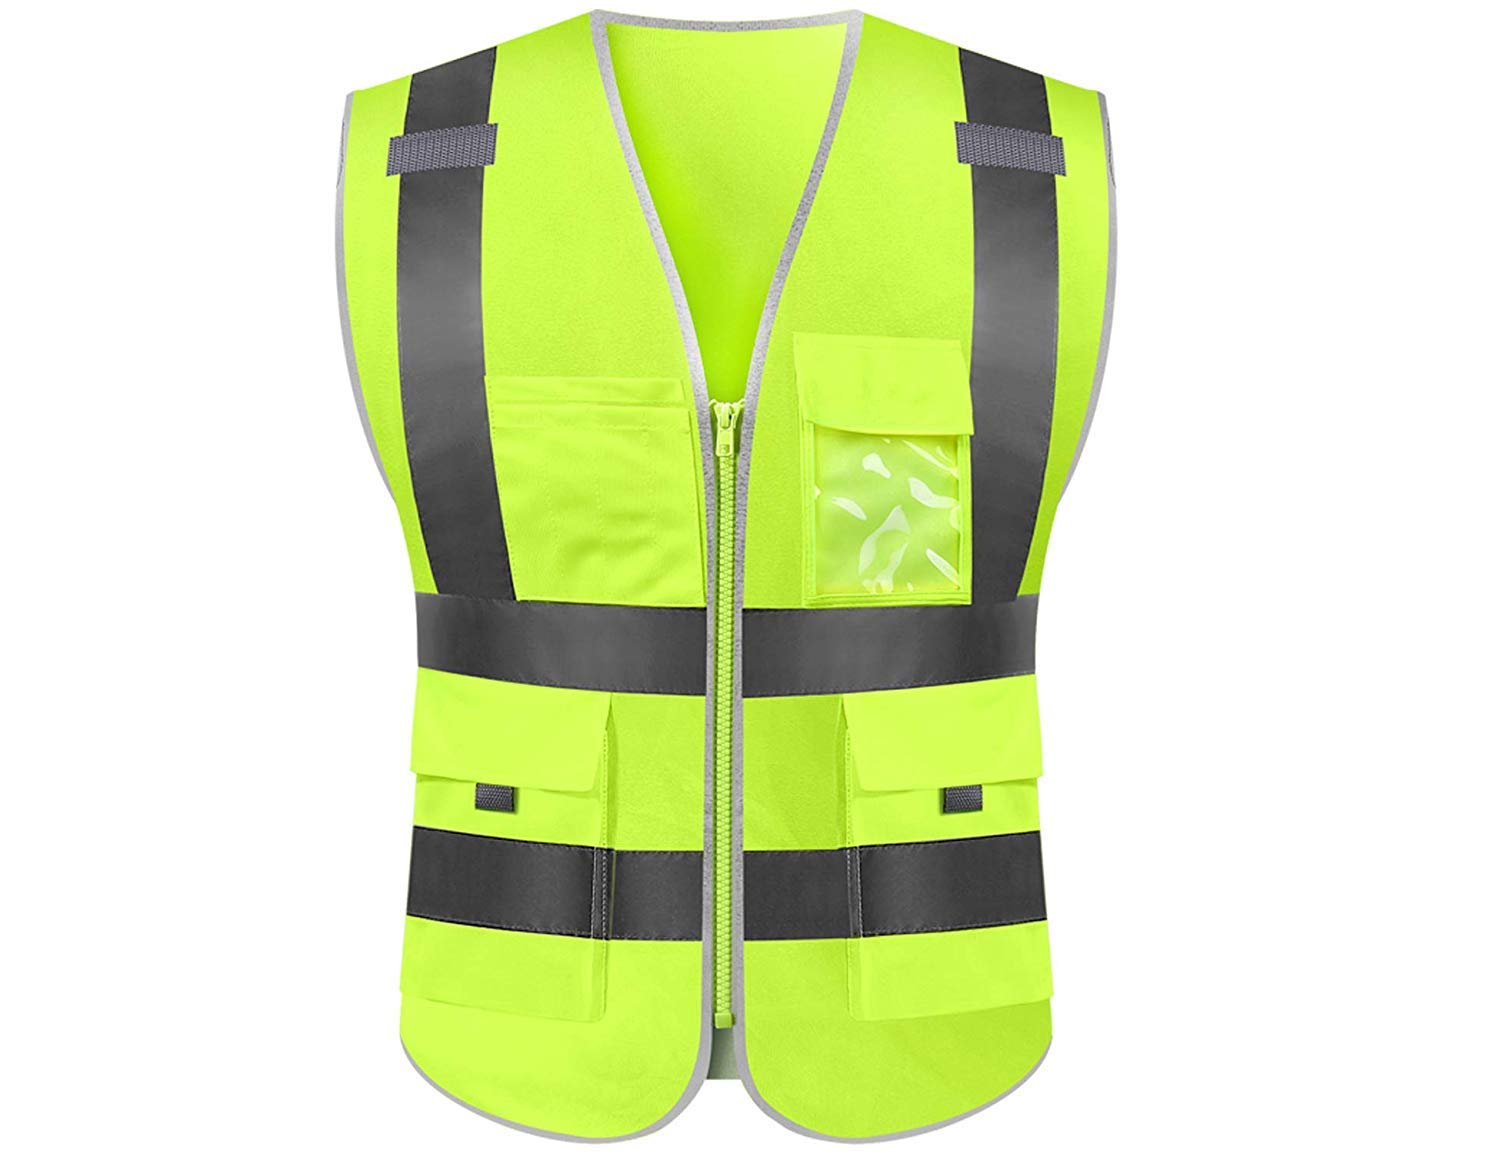 Reflective safety vest high visibility reflective tape with pockets and front zipper class 2